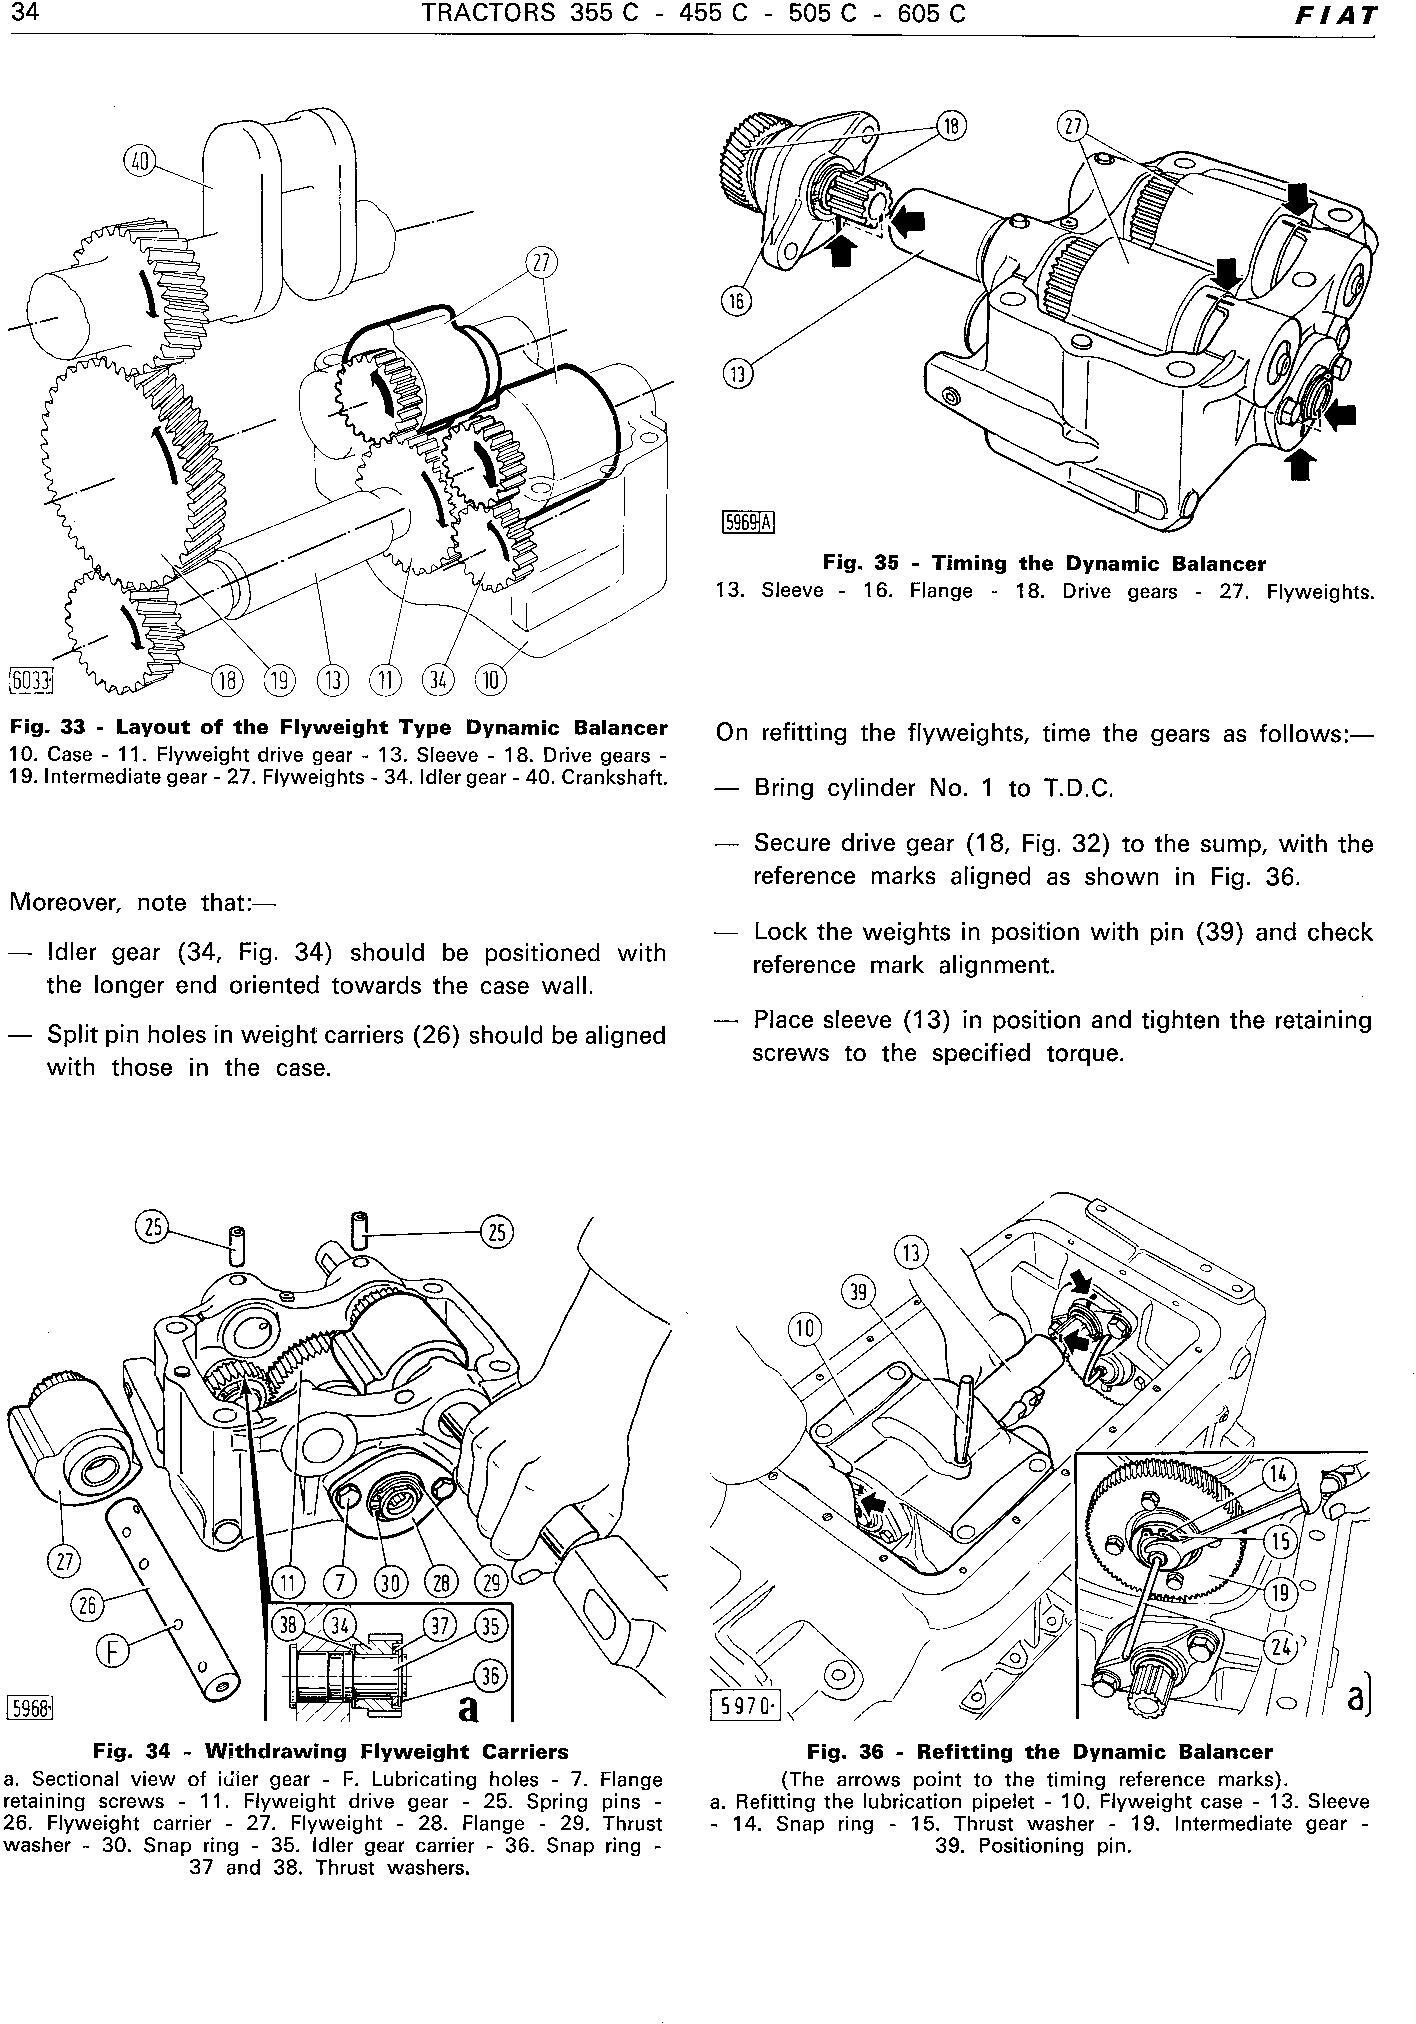 Fiat 355C, 455C, 505C, 605C Crawler Tractor Workshop Service Manual (6035416200) - 2